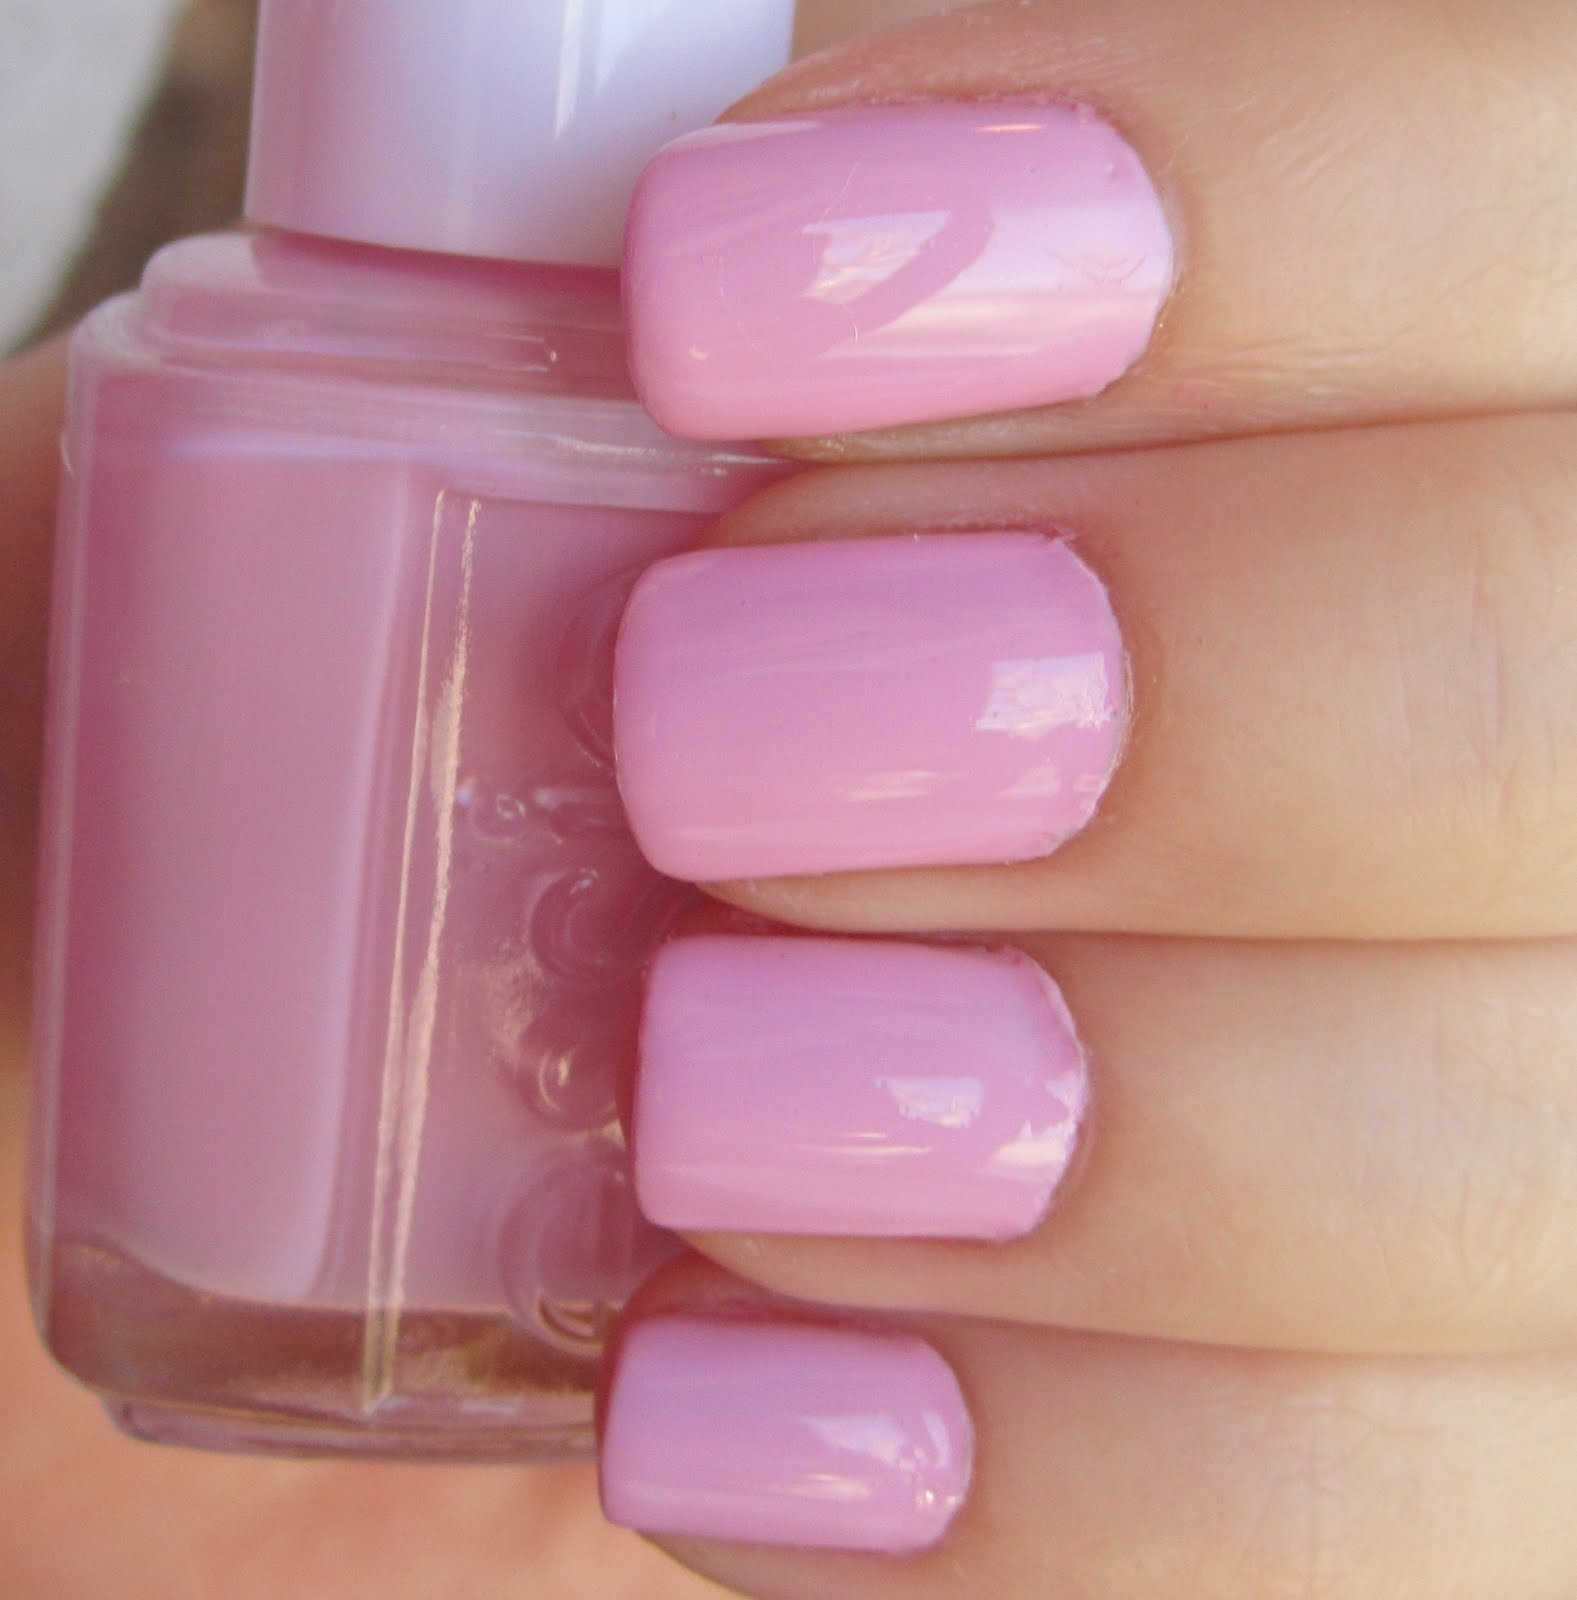 Best Light Pink Nail Polish Essie: The Beauty B.: Essie French Affair + Crackle Glaze